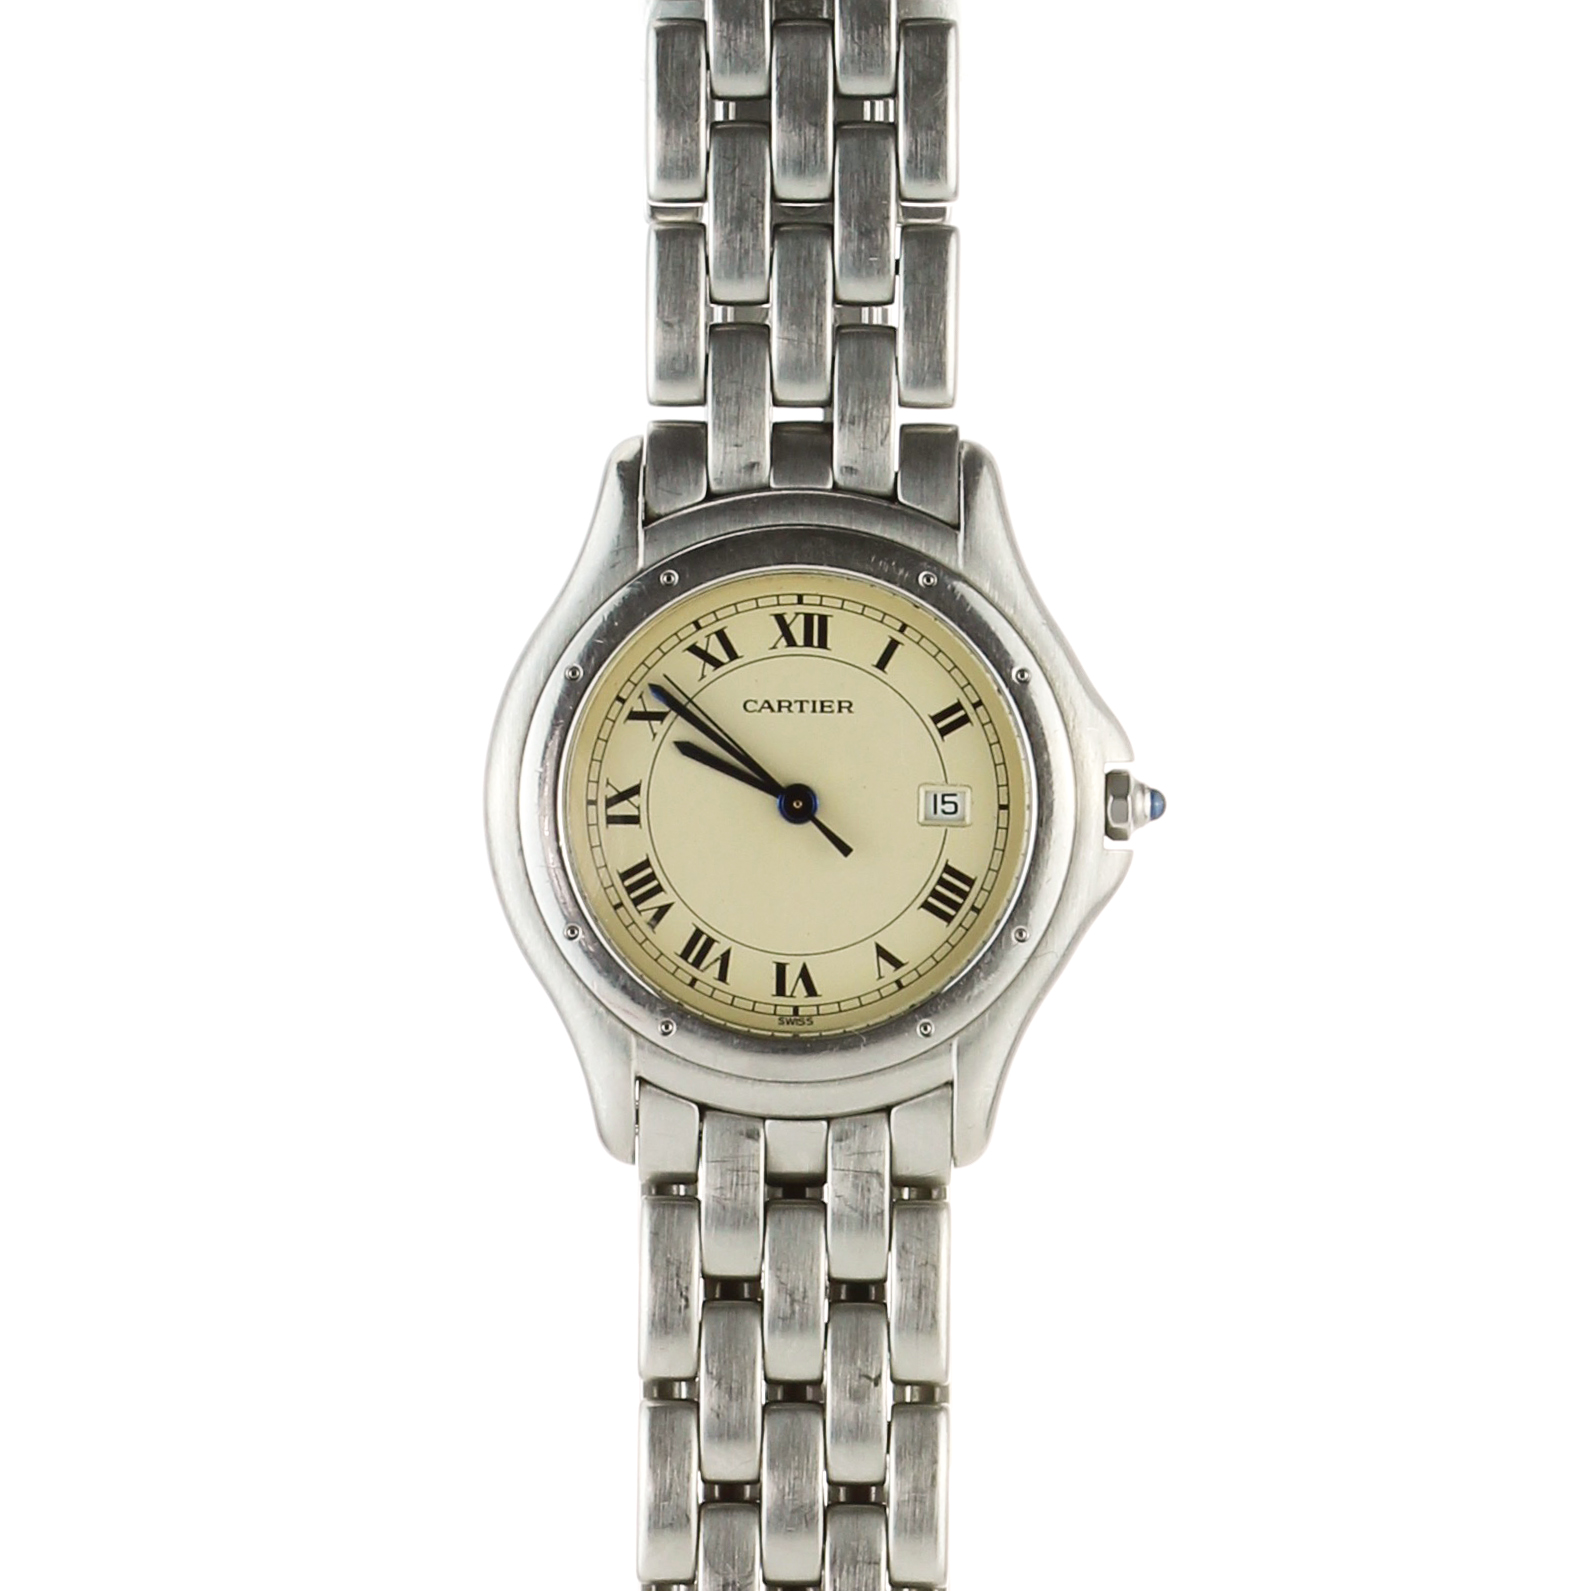 Los 219 - CARTIER A stainless steel Panthere Cougar Quartz wristwatch by Cartier circa 1990 with 32x36mm